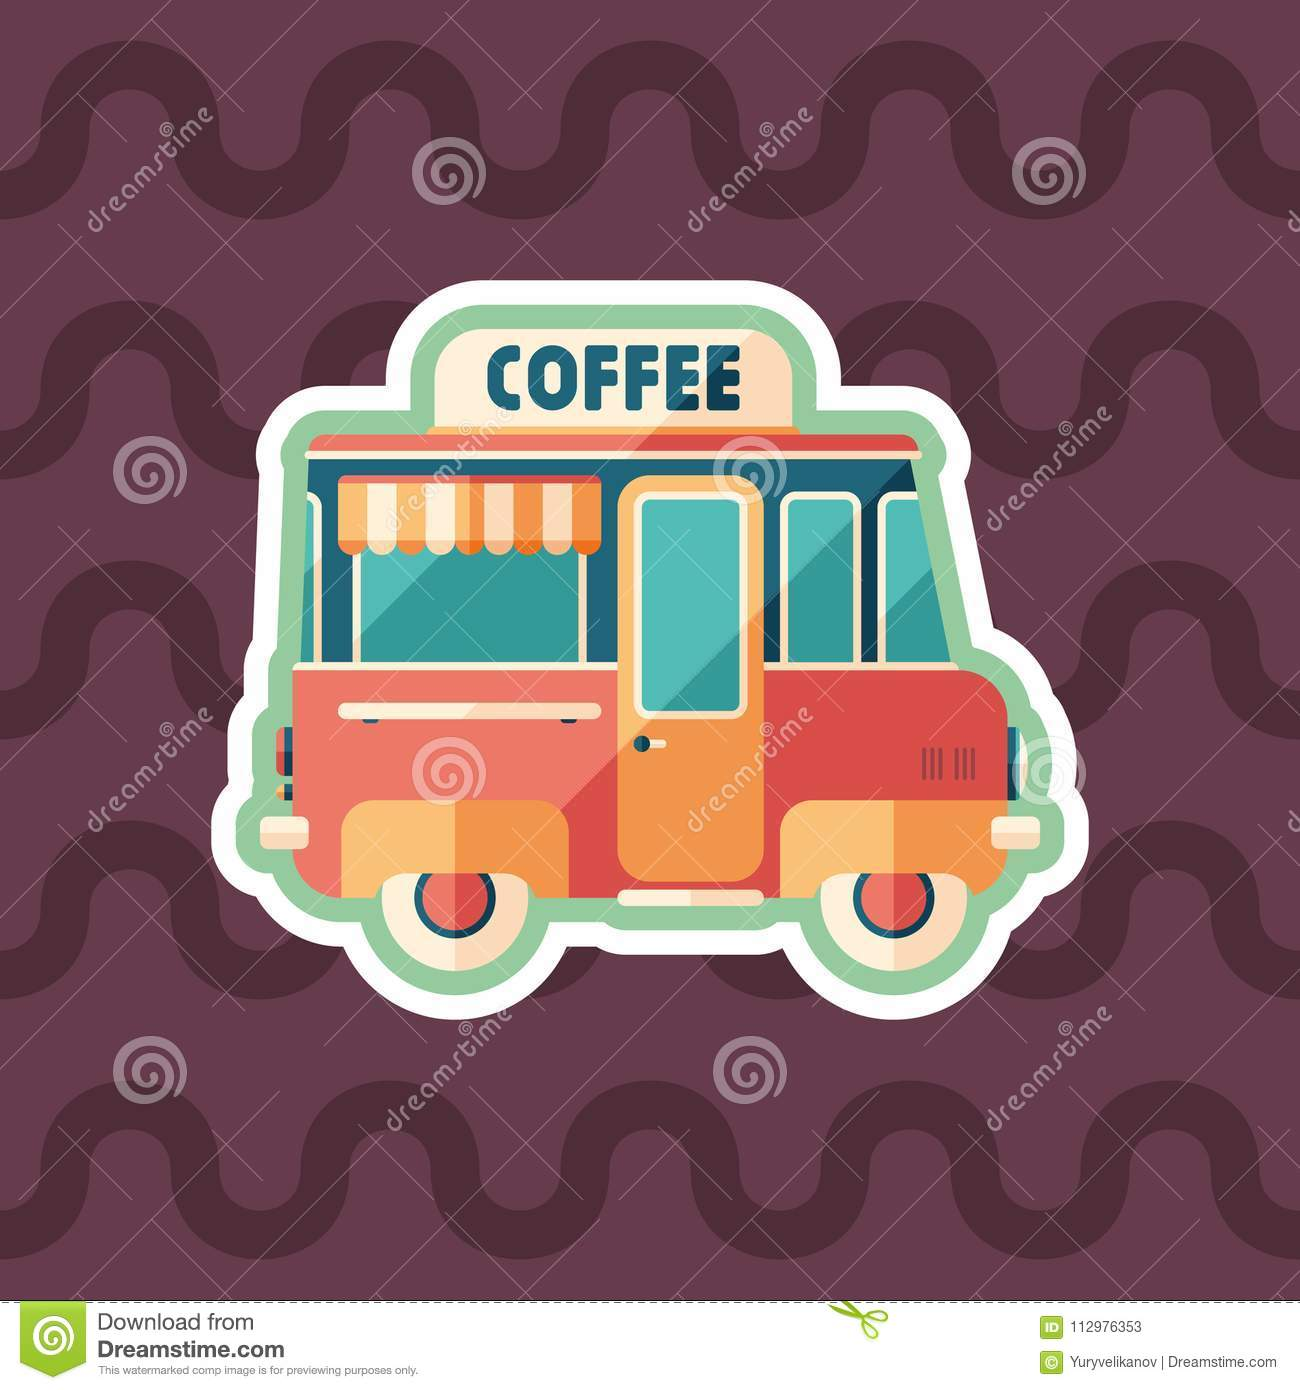 Coffee van sticker flat icon with color background.